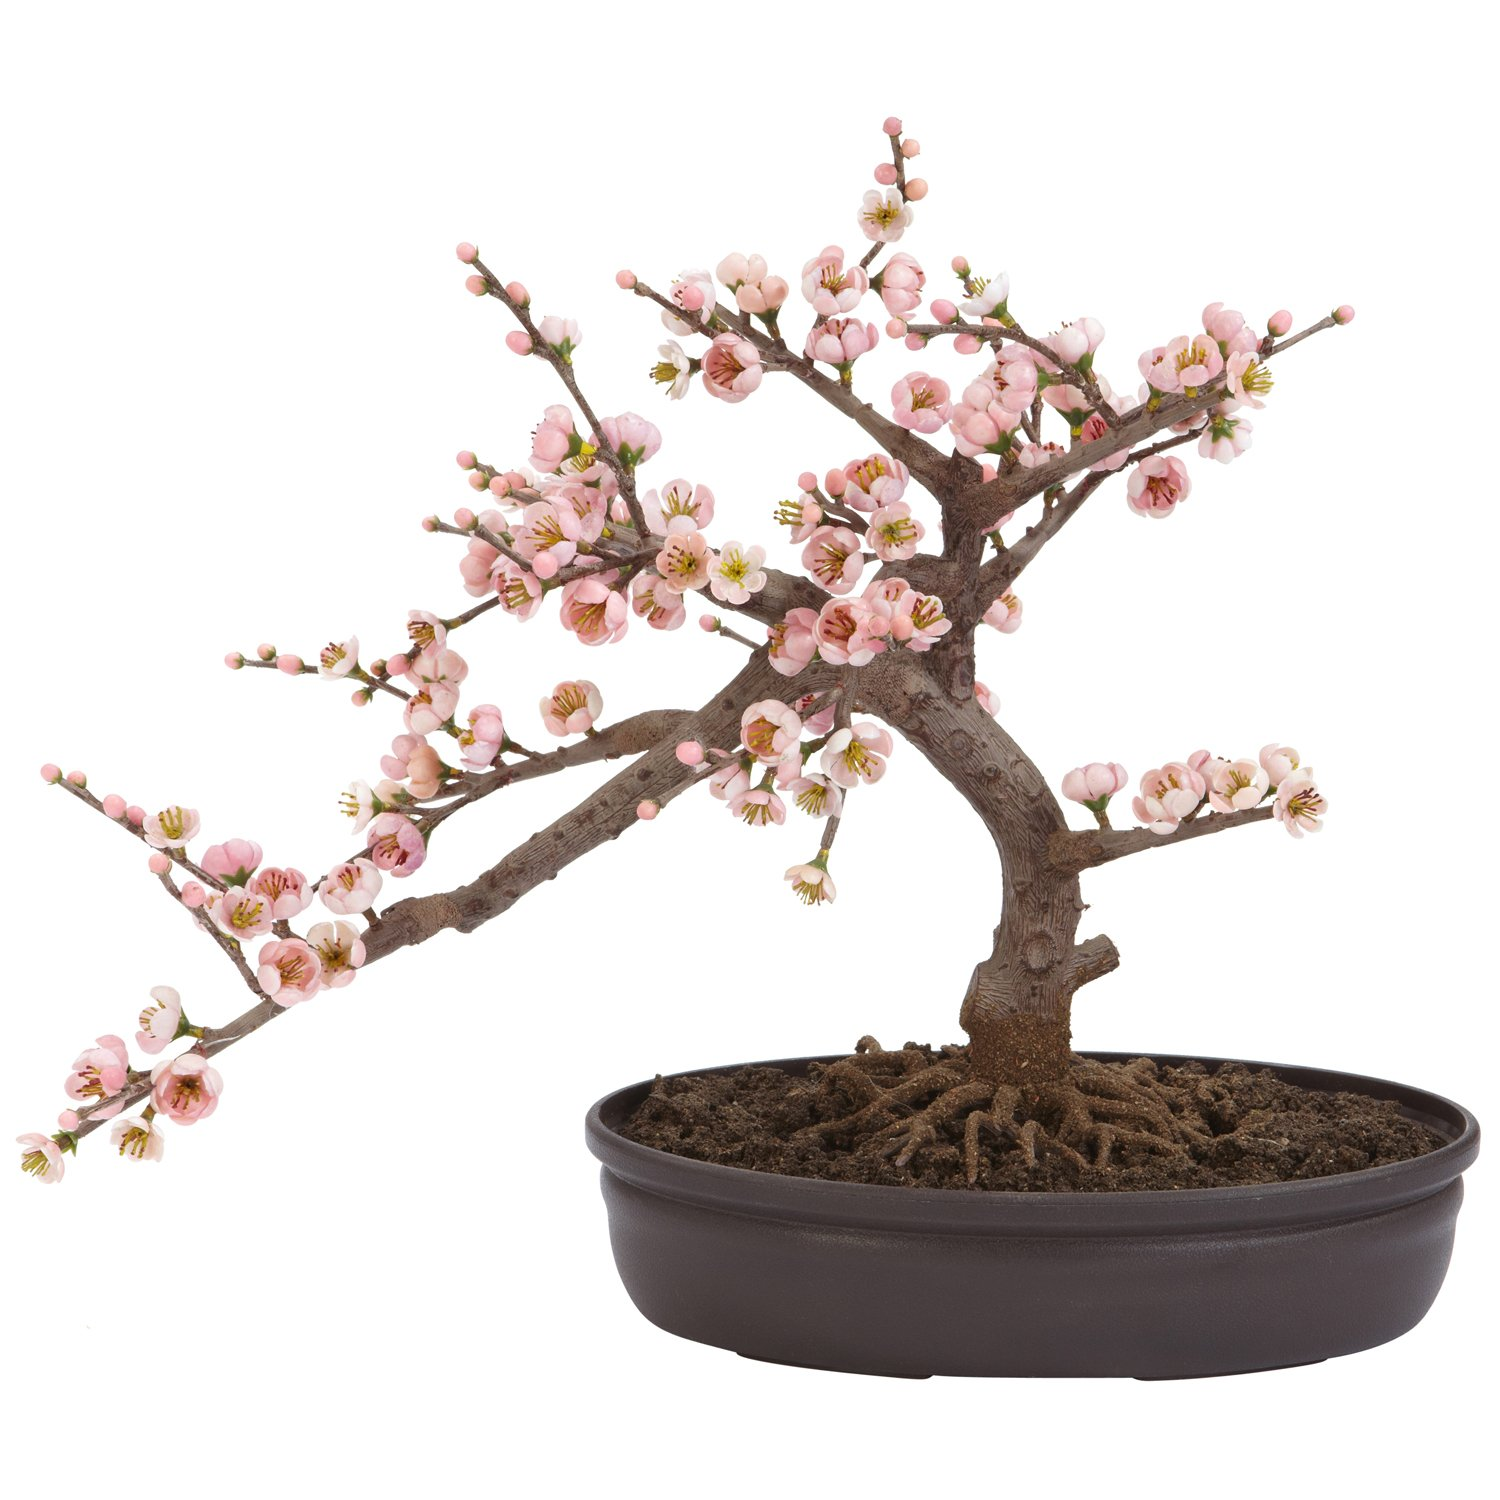 Decorative Indoor Trees Amazoncom Nearly Natural 4764 Cherry Blossom Bonsai Artificial